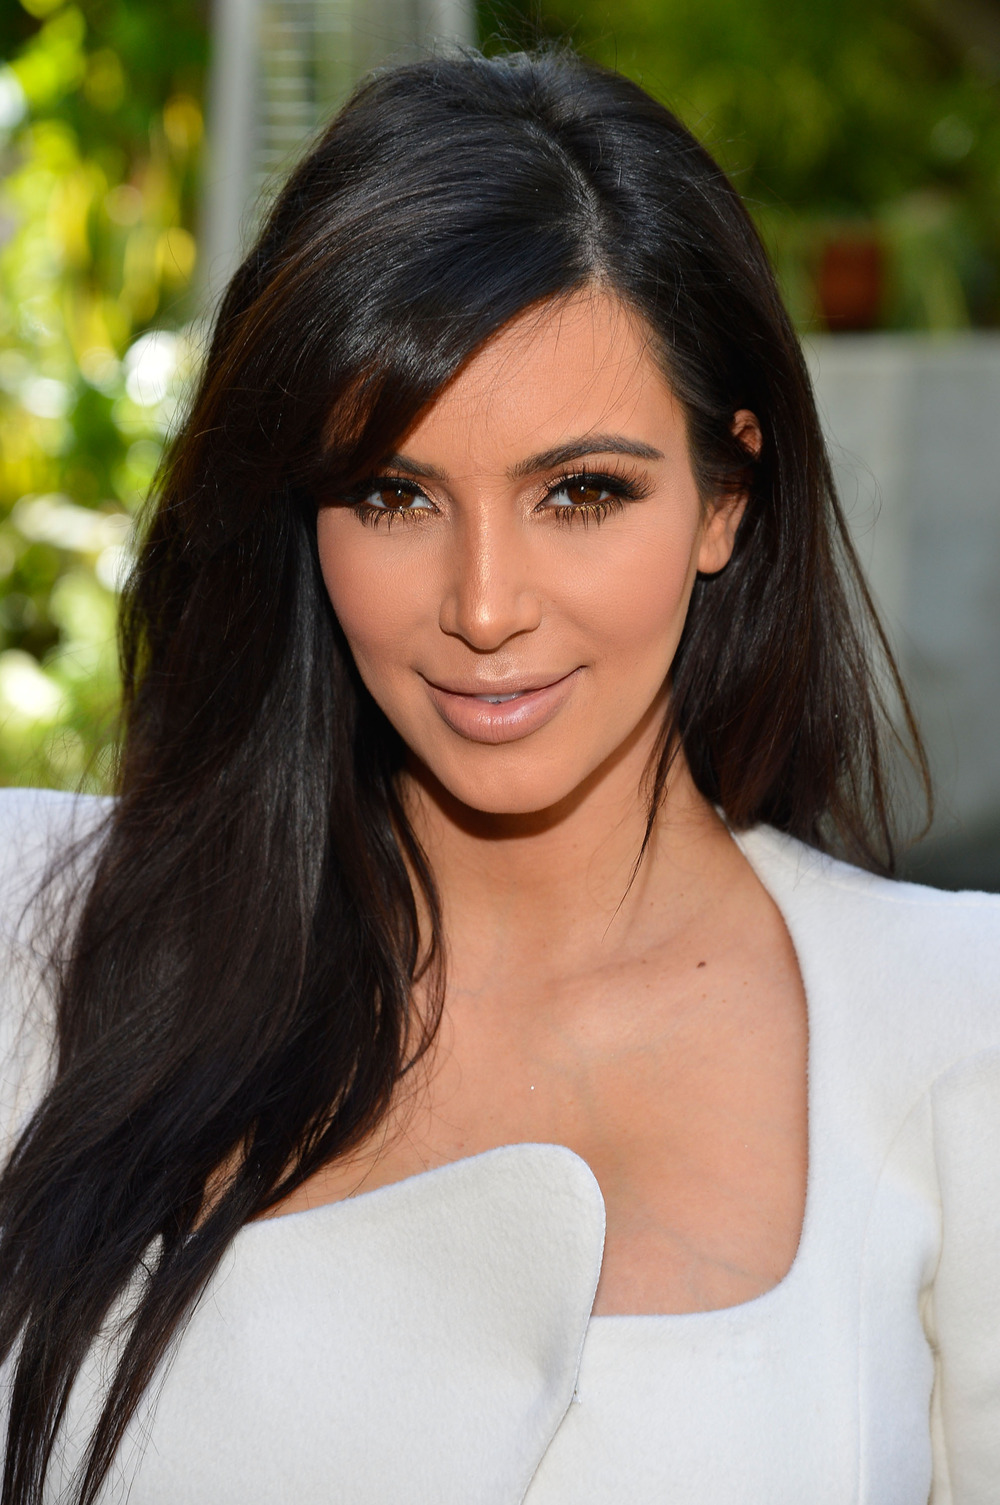 Kim Kardashian Reveals She Had a Secret Photoshoot in London With Nick Knight